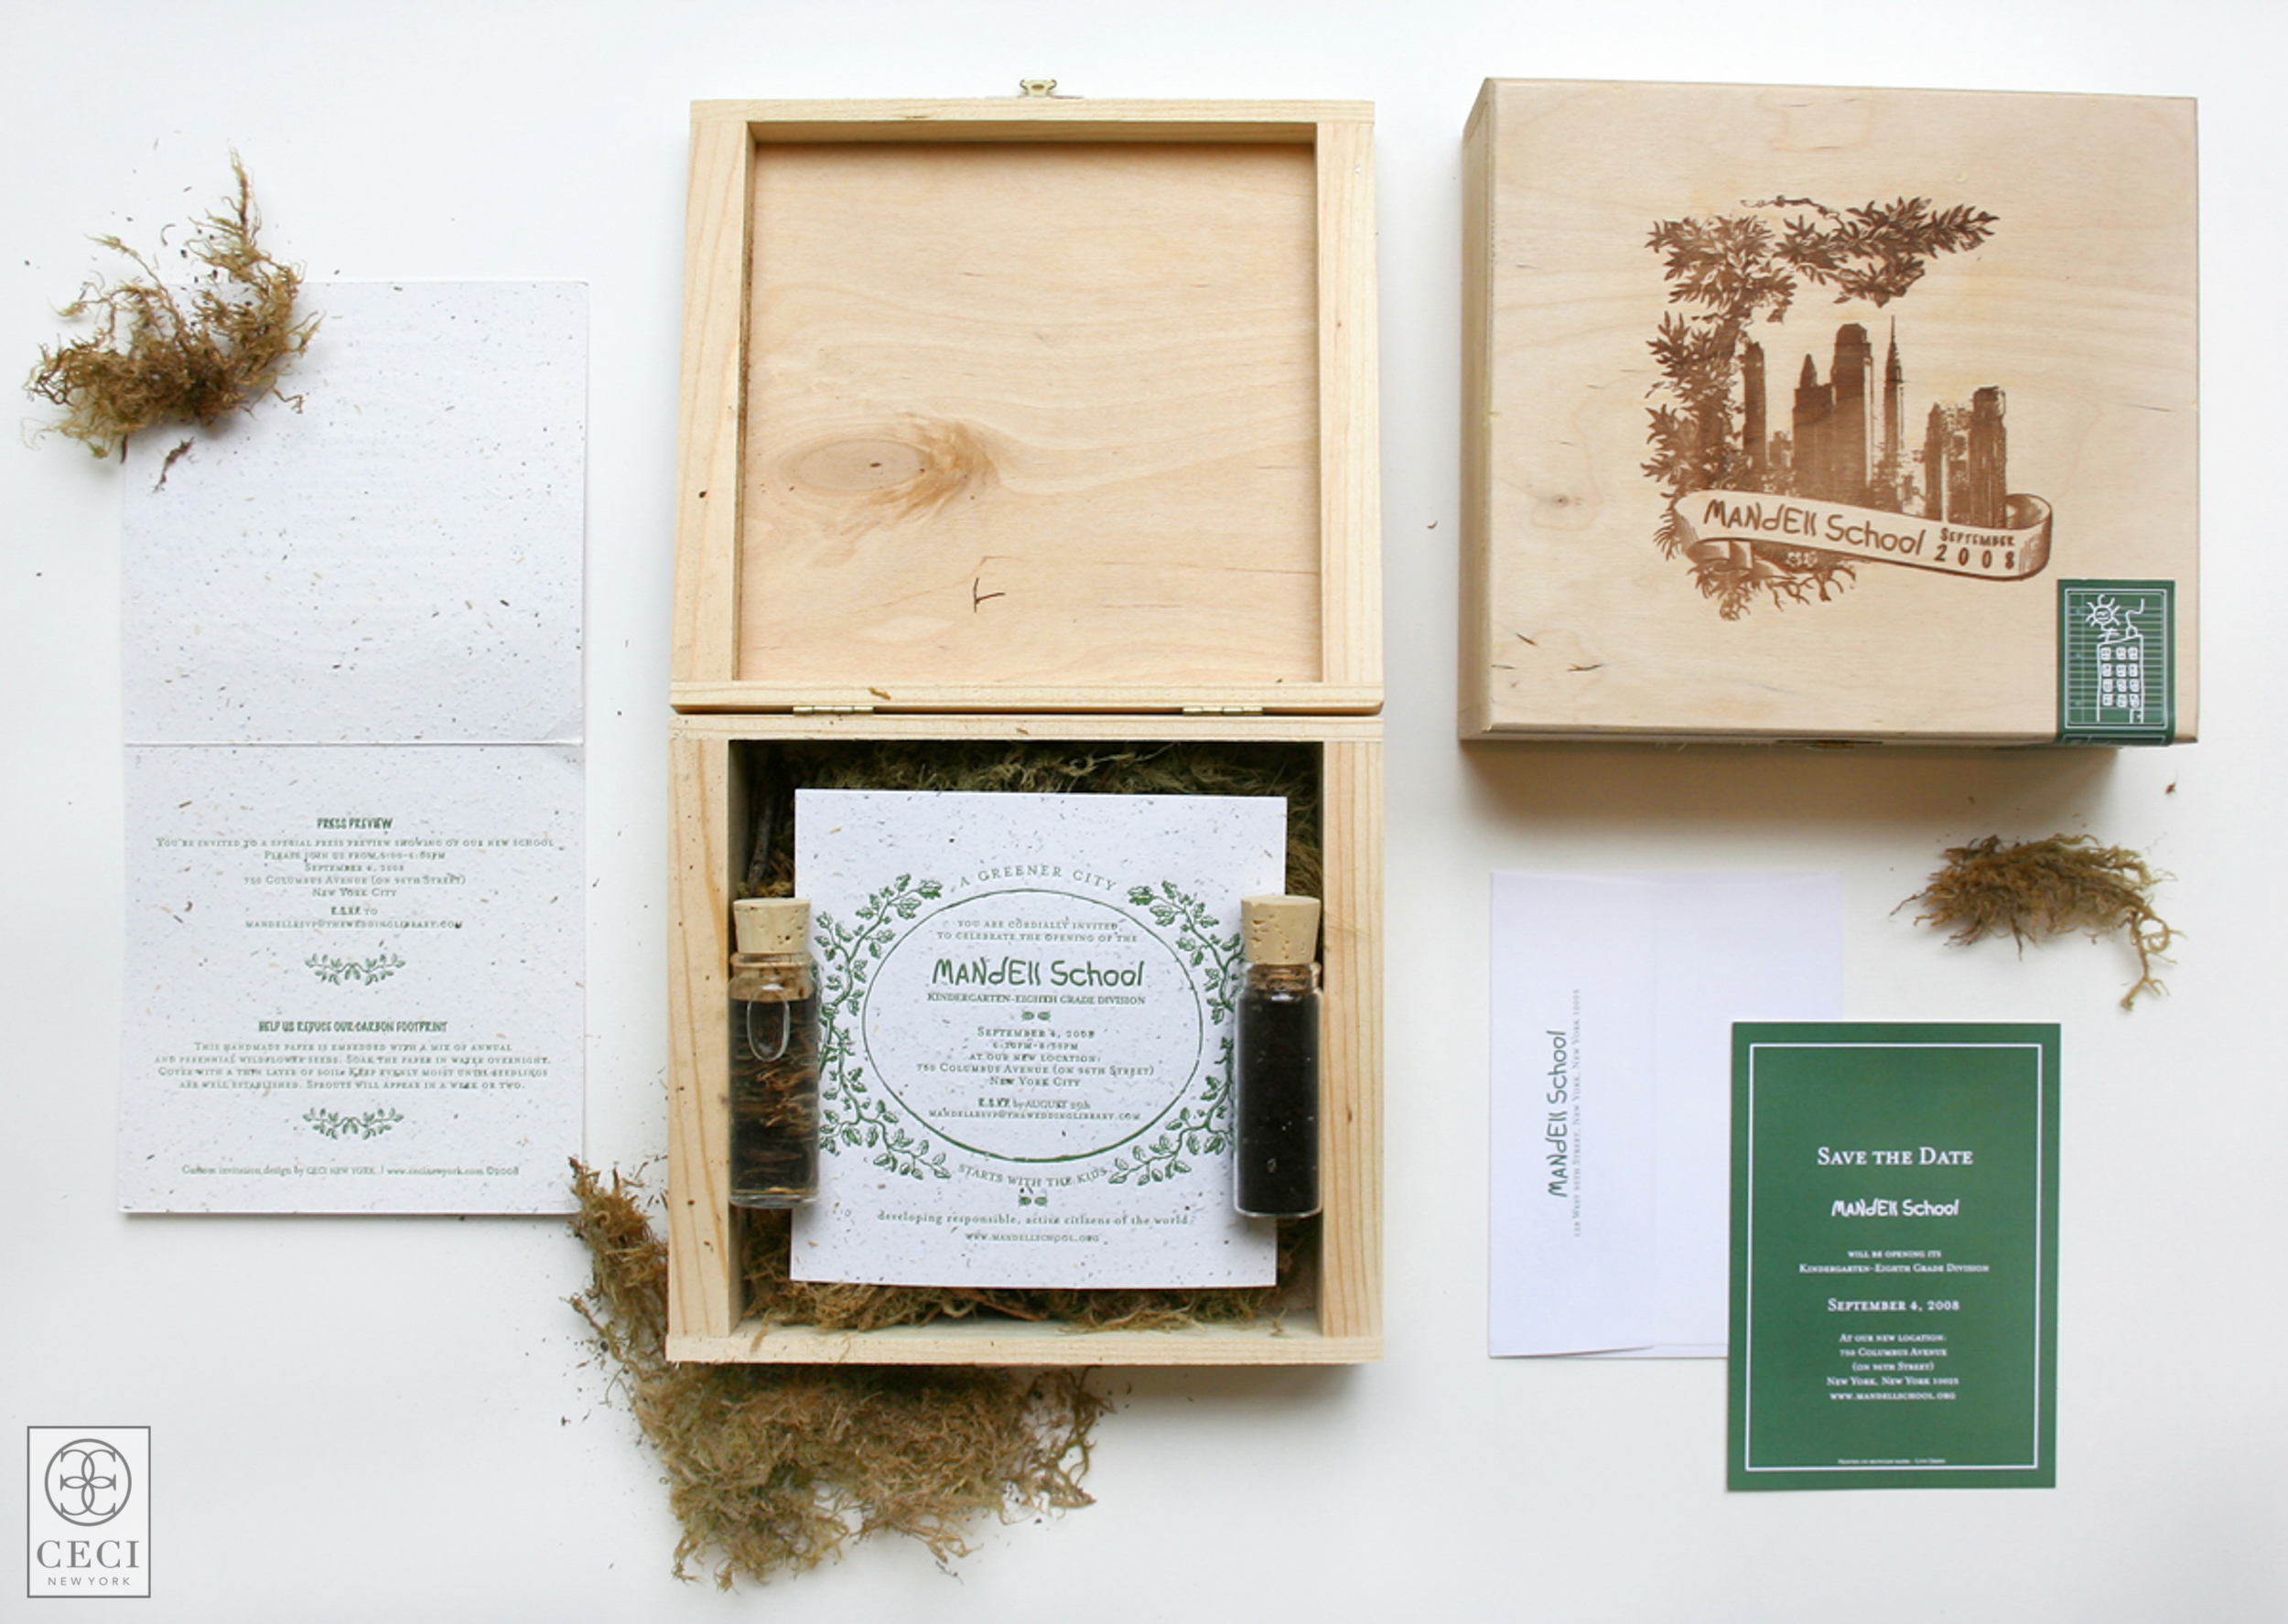 ceci_new_york_event_invitation_the_mandell_school_new_york_city_opening_natural_sustainable_eco_friendly_design-3.jpg